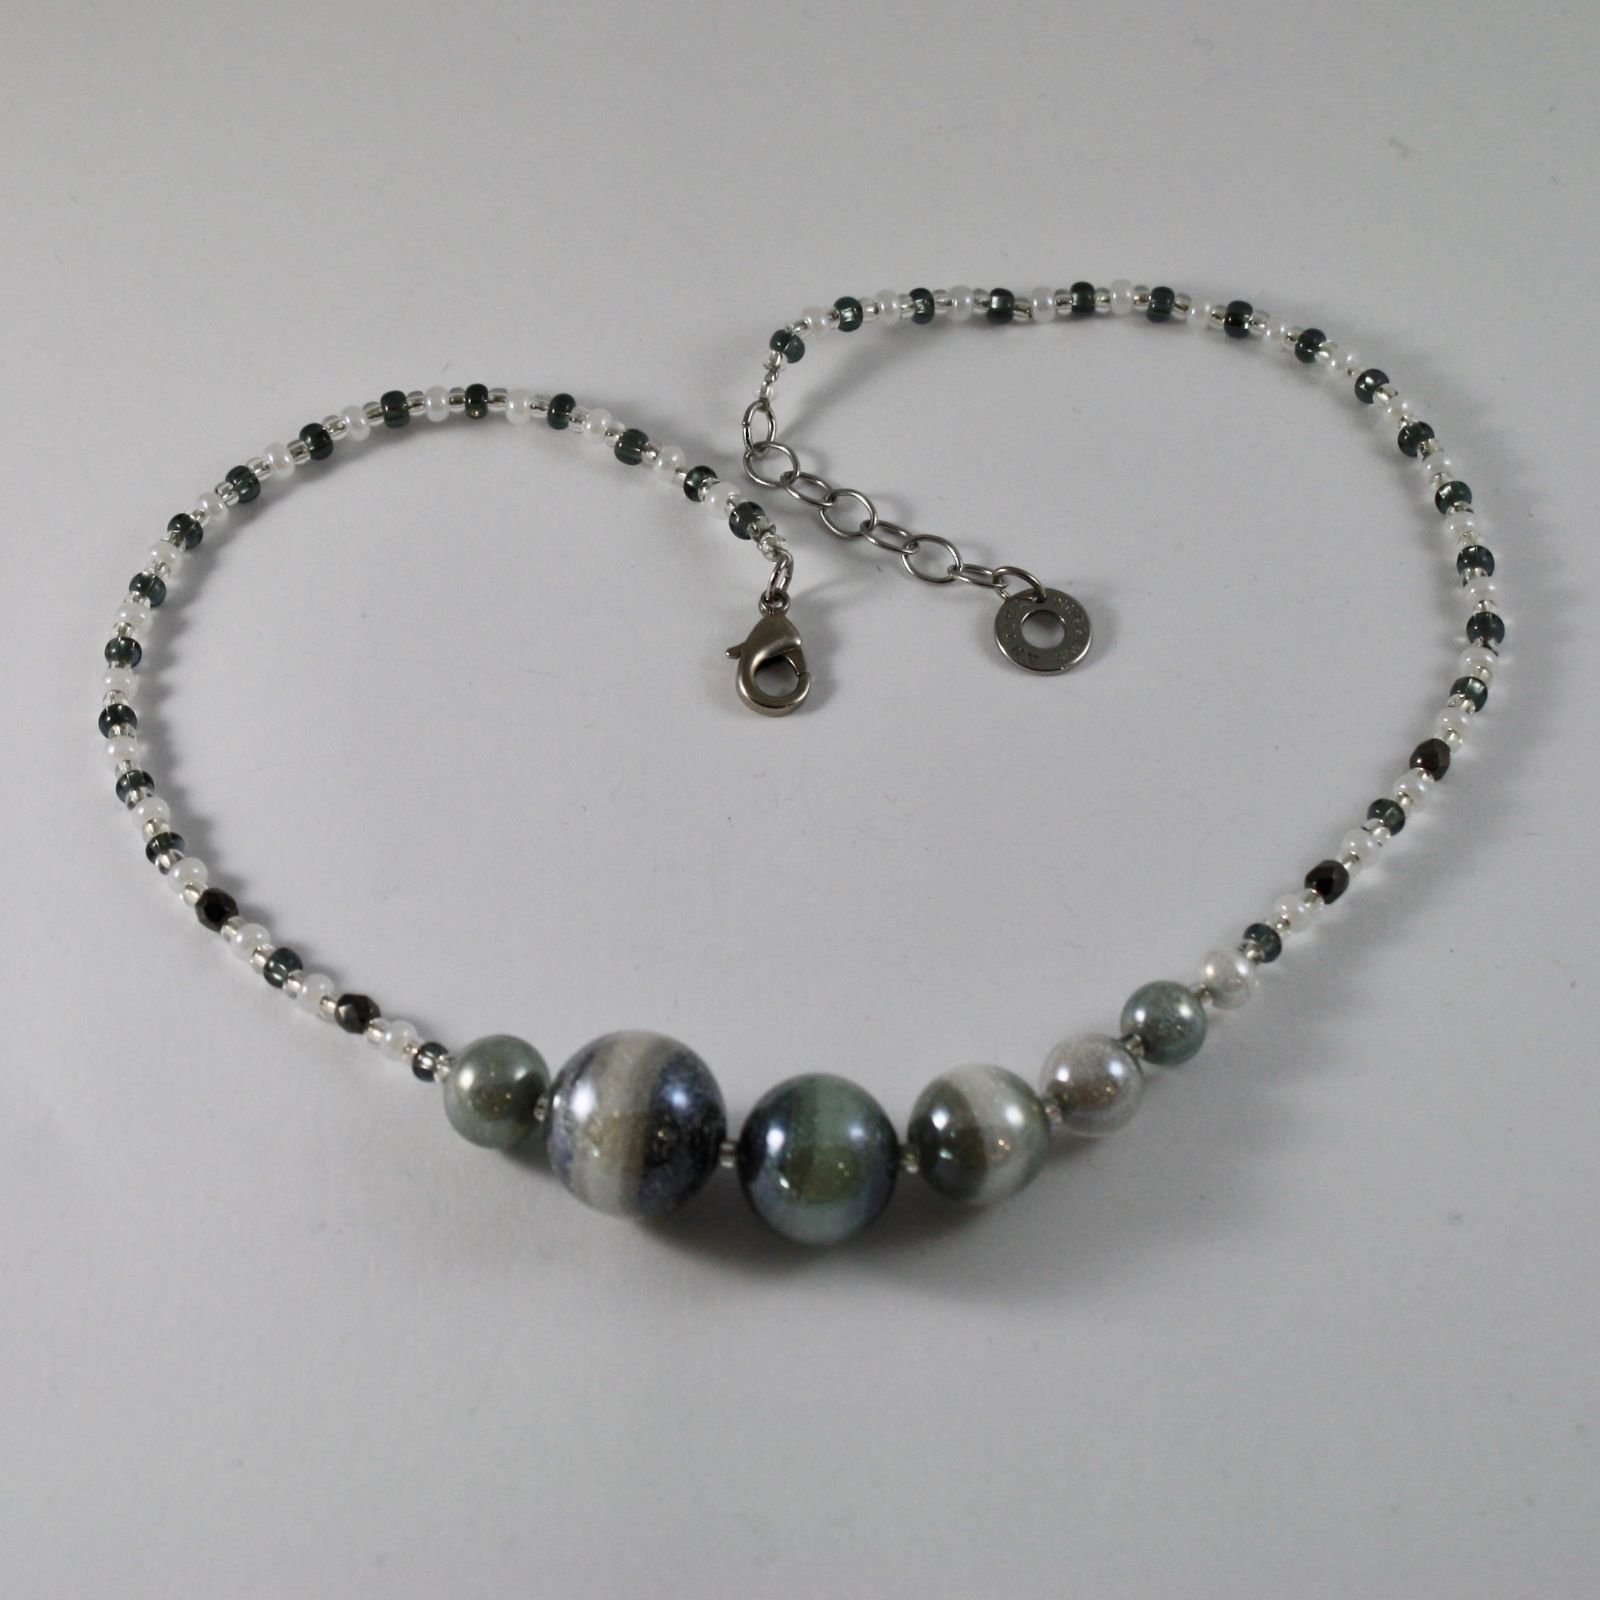 ANTICA MURRINA VENEZIA NECKLACE WITH BLACK WHITE MURANO GLASS BALLS 18 INCHES